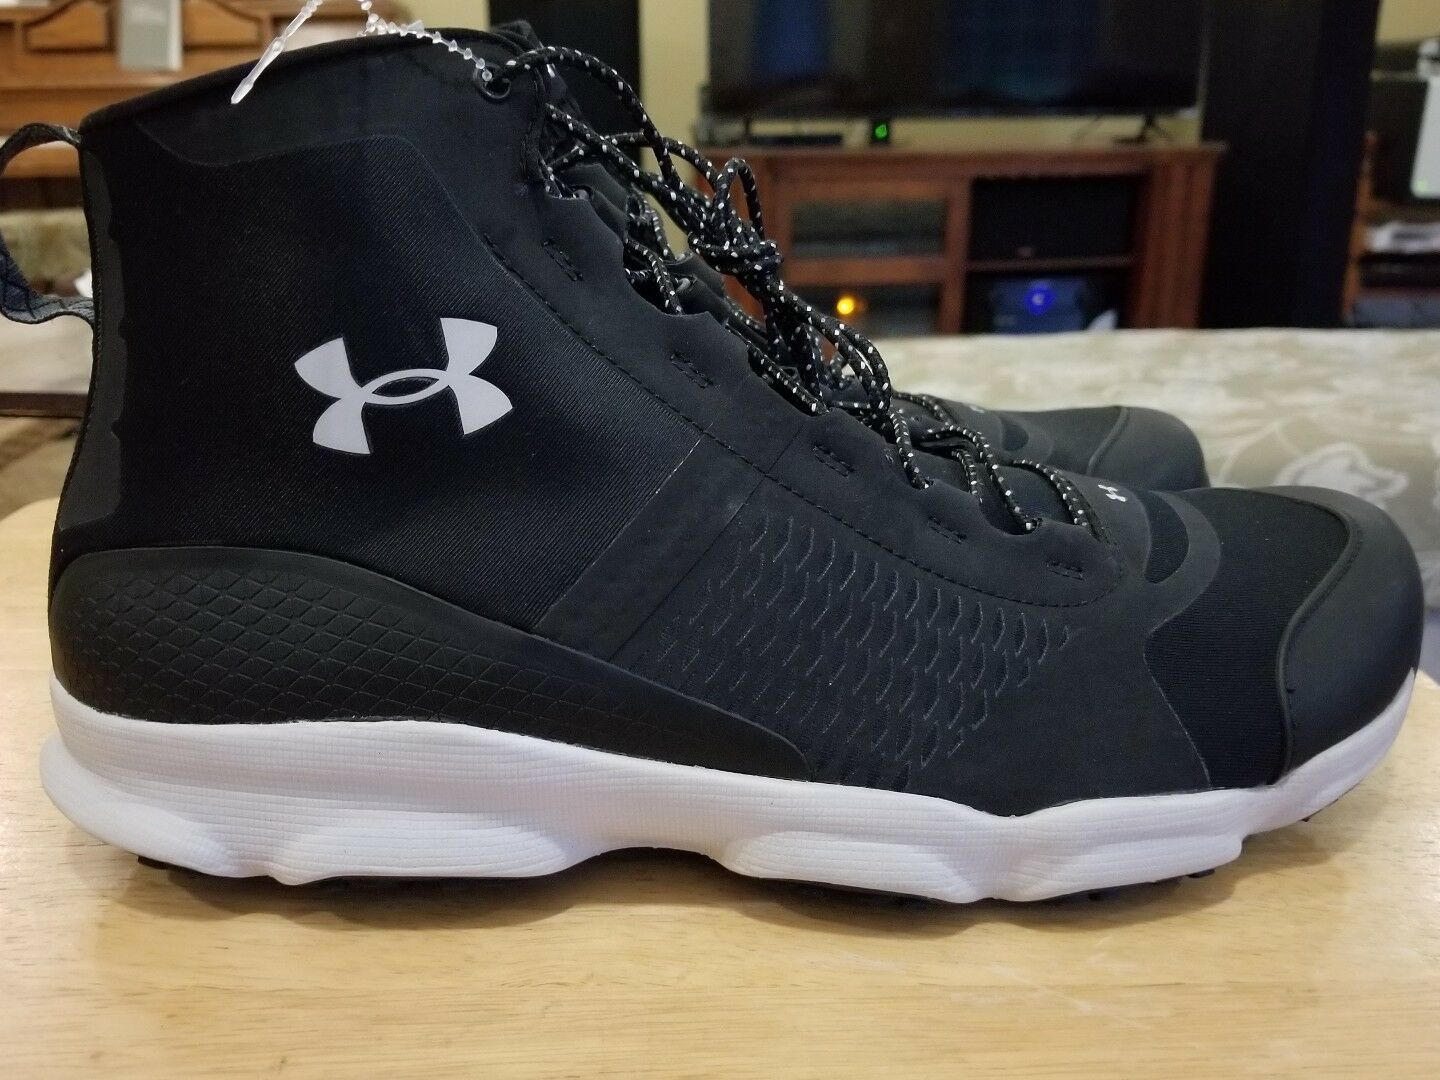 Under Armour 1257447-005 UA Men's SpeedFit Hike MID Boots Black Smoke 13